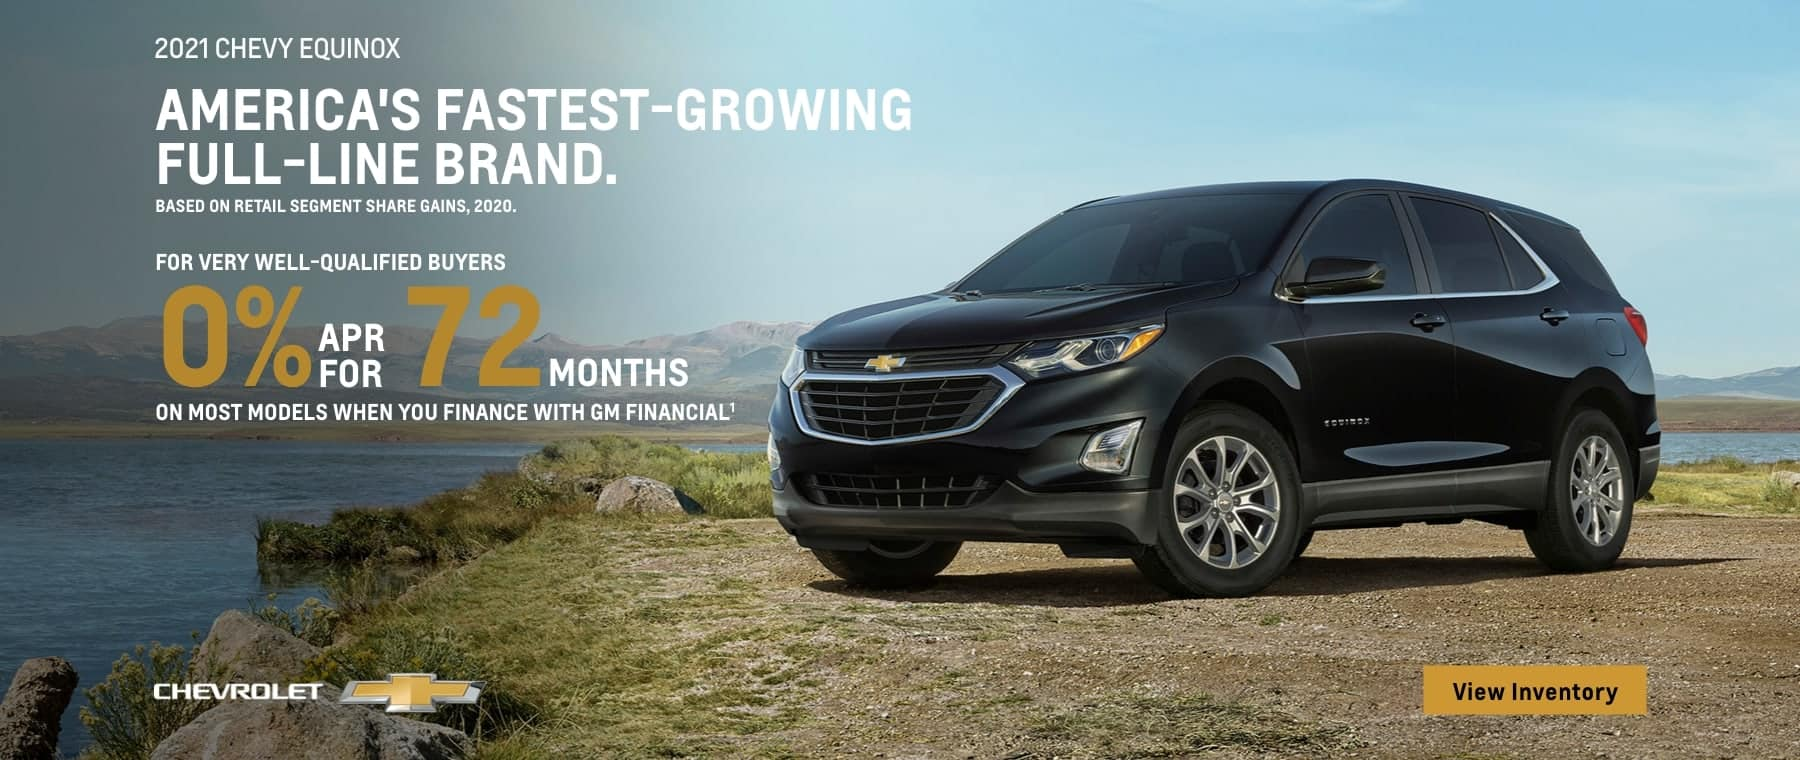 2021 Equinox For very well-qualified buyers 0% APR for 72 months on most models when you finance with GM financial.